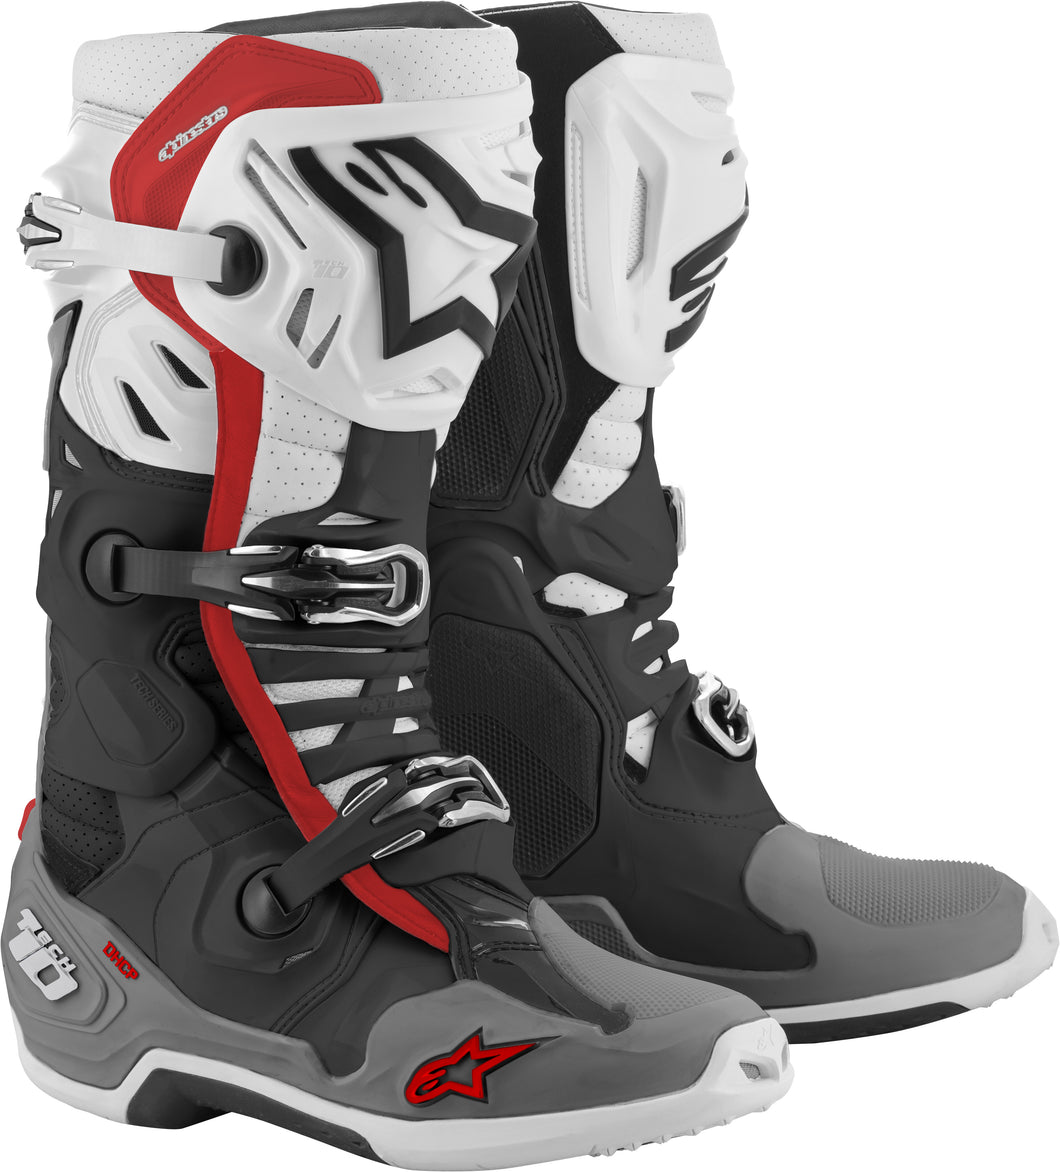 ALPINESTARS | TECH 10 SUPERVENTED BOOTS BLACK/WHITE/MID GREY/RED SZ 13 | 482-01513